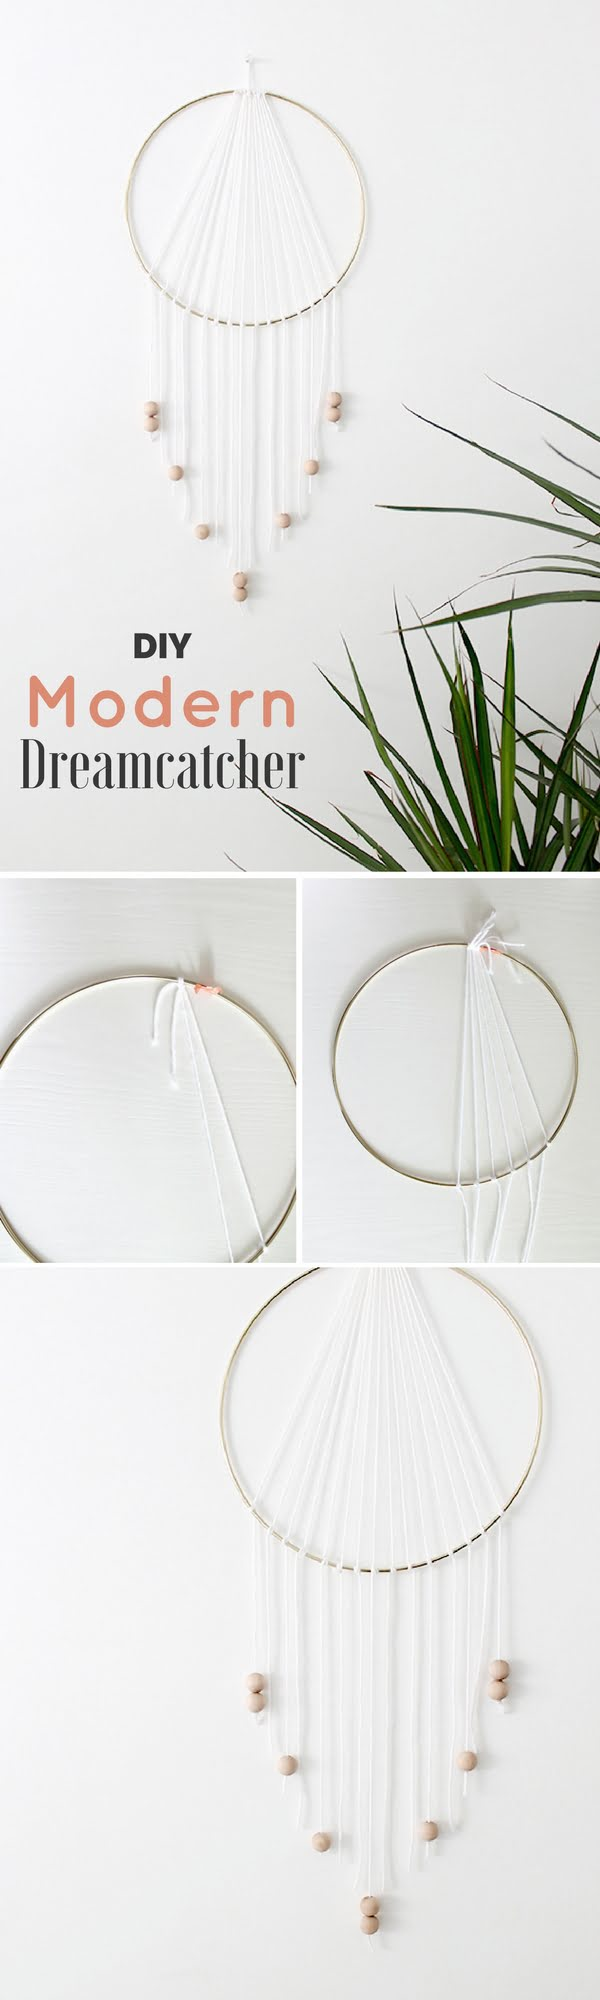 16 Beautiful DIY Bedroom Decor Ideas That Will Inspire You - Check out how to make a very easy DIY Modern Dreamcatcher for bedroom decor